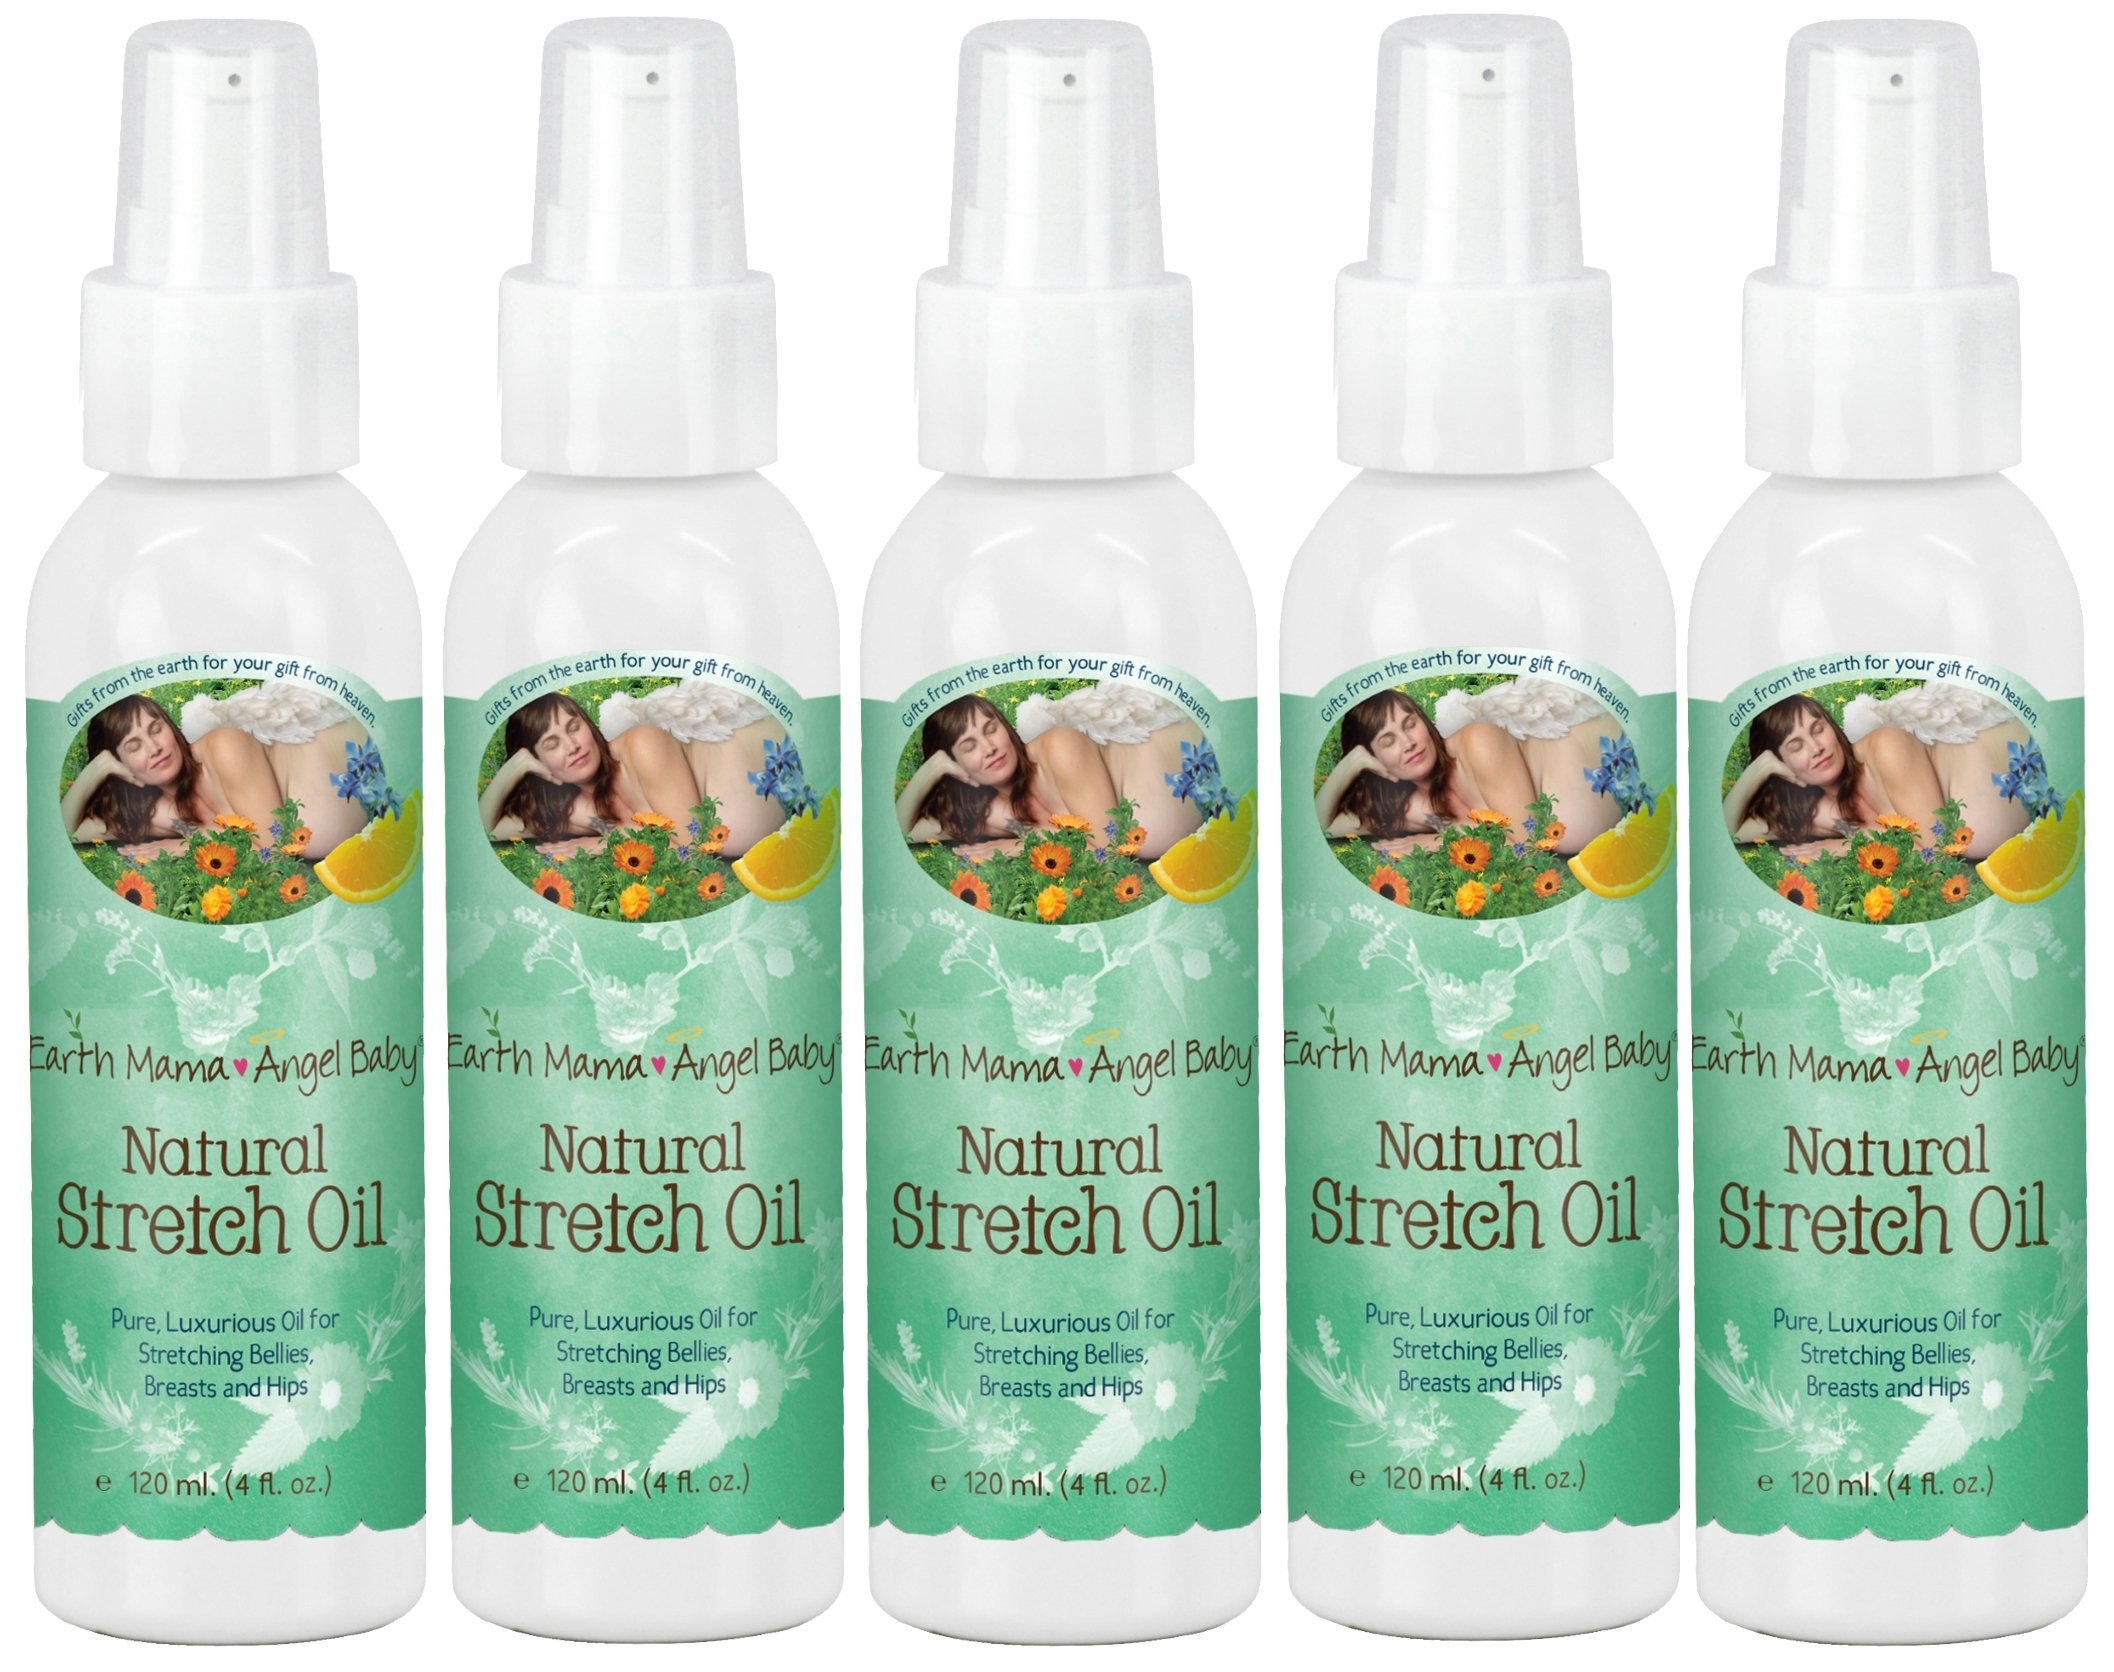 Earth Mama Angel Baby Natural Stretch Oil (Pack of 5)